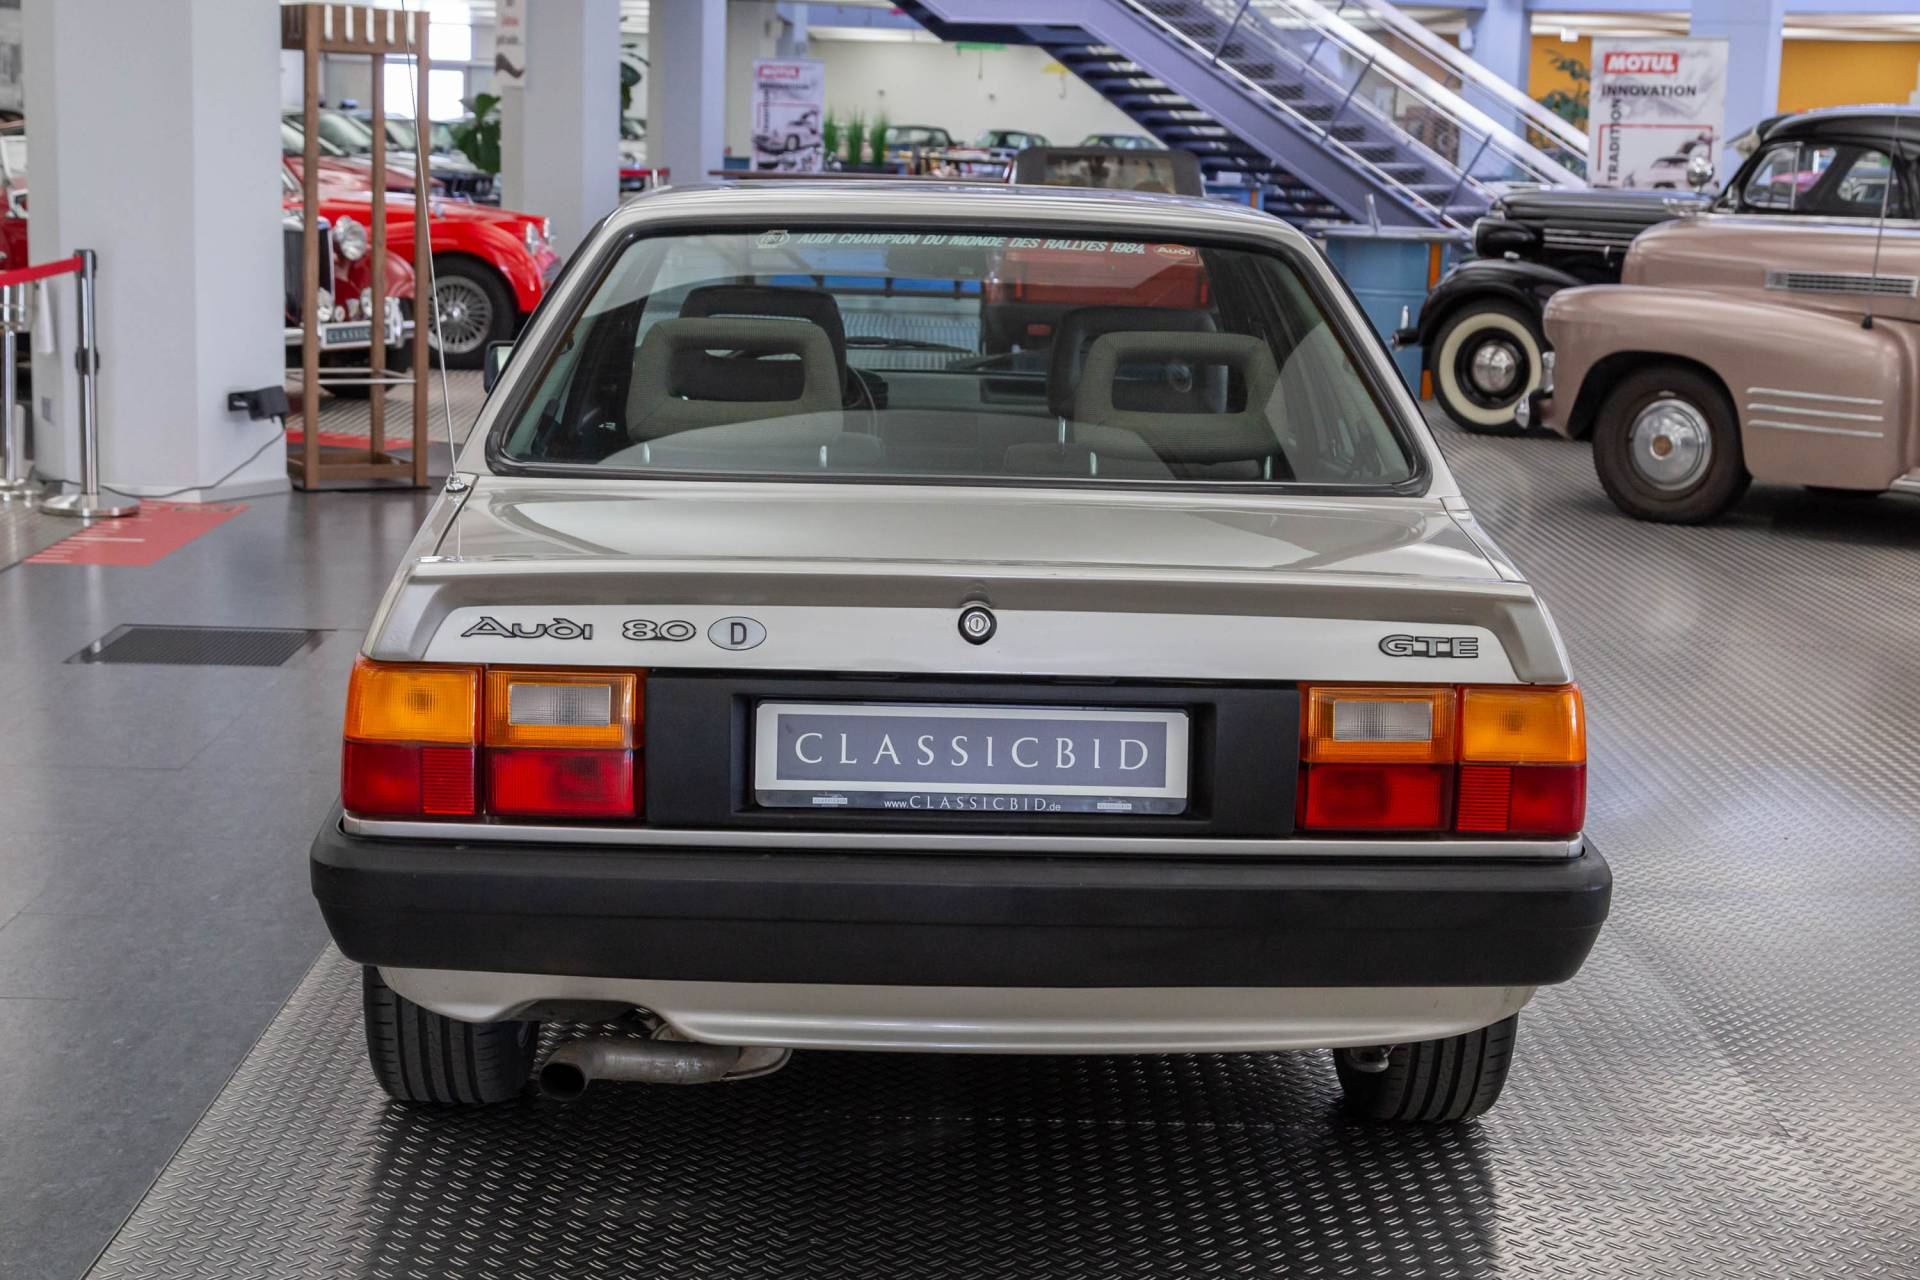 For Sale: Audi 80 GTE (1986) offered for GBP 9,581